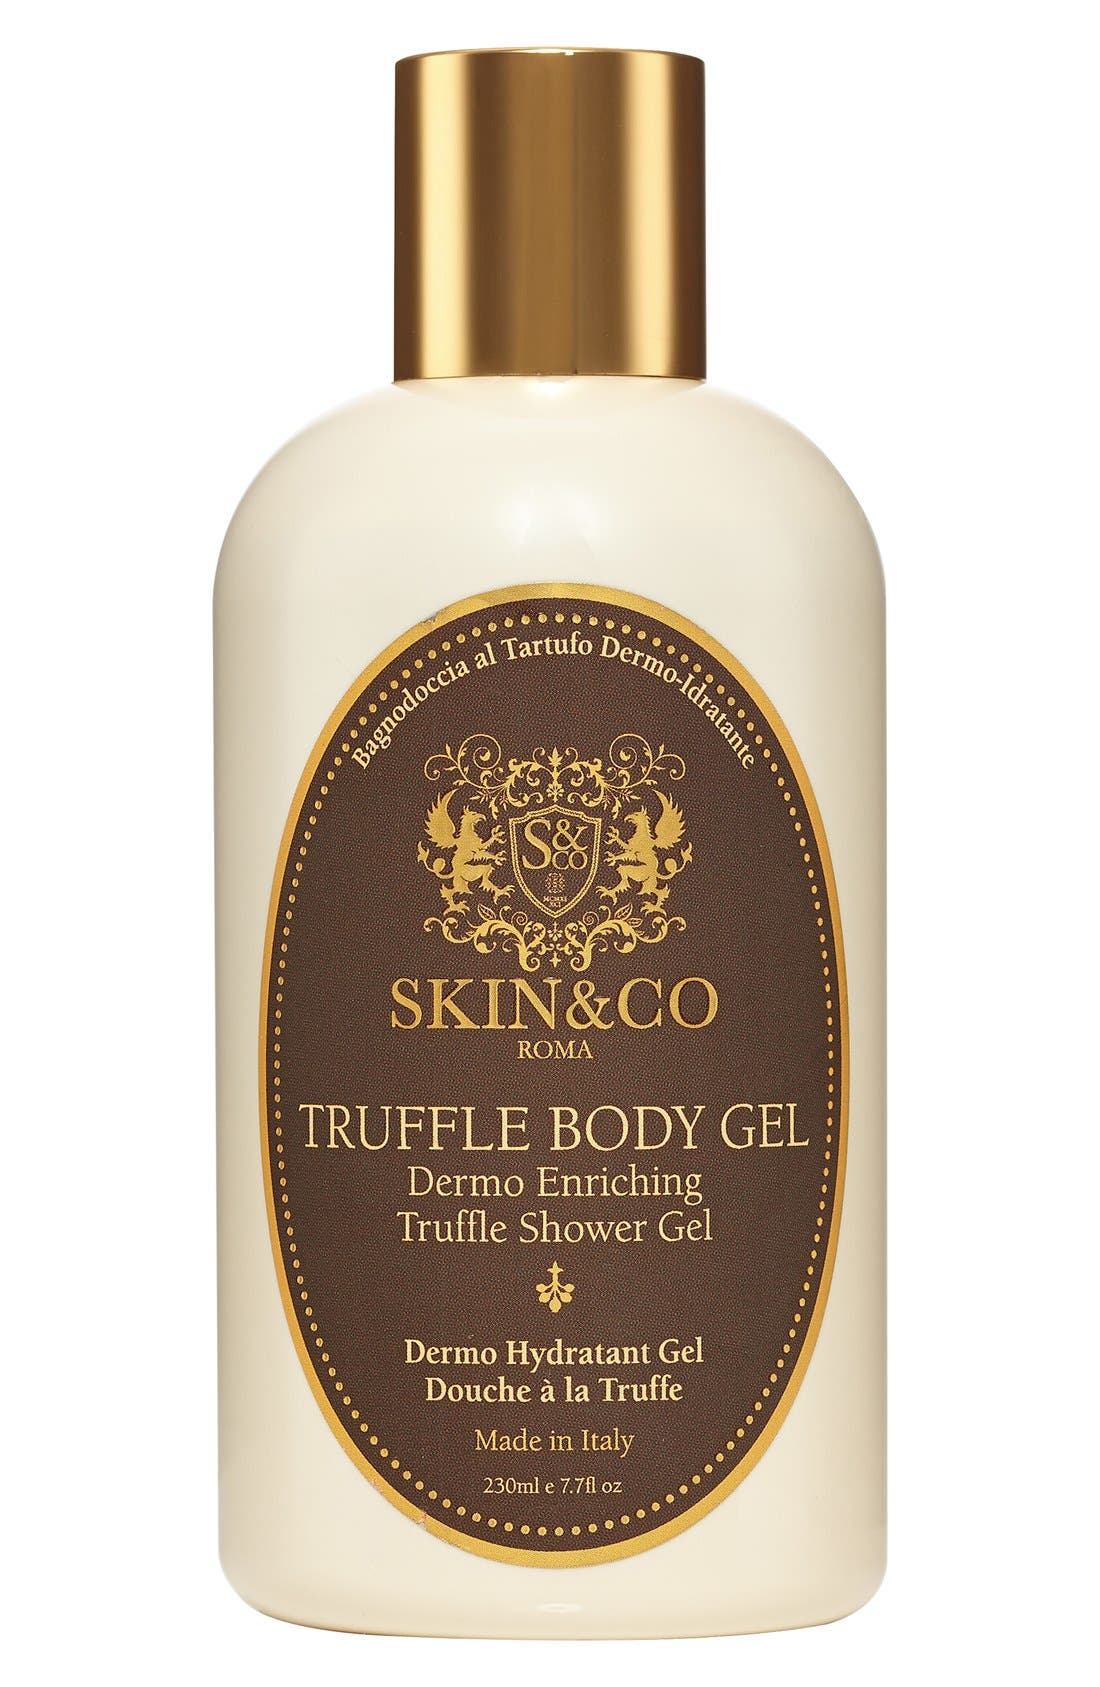 SKIN&CO Truffle Body Gel